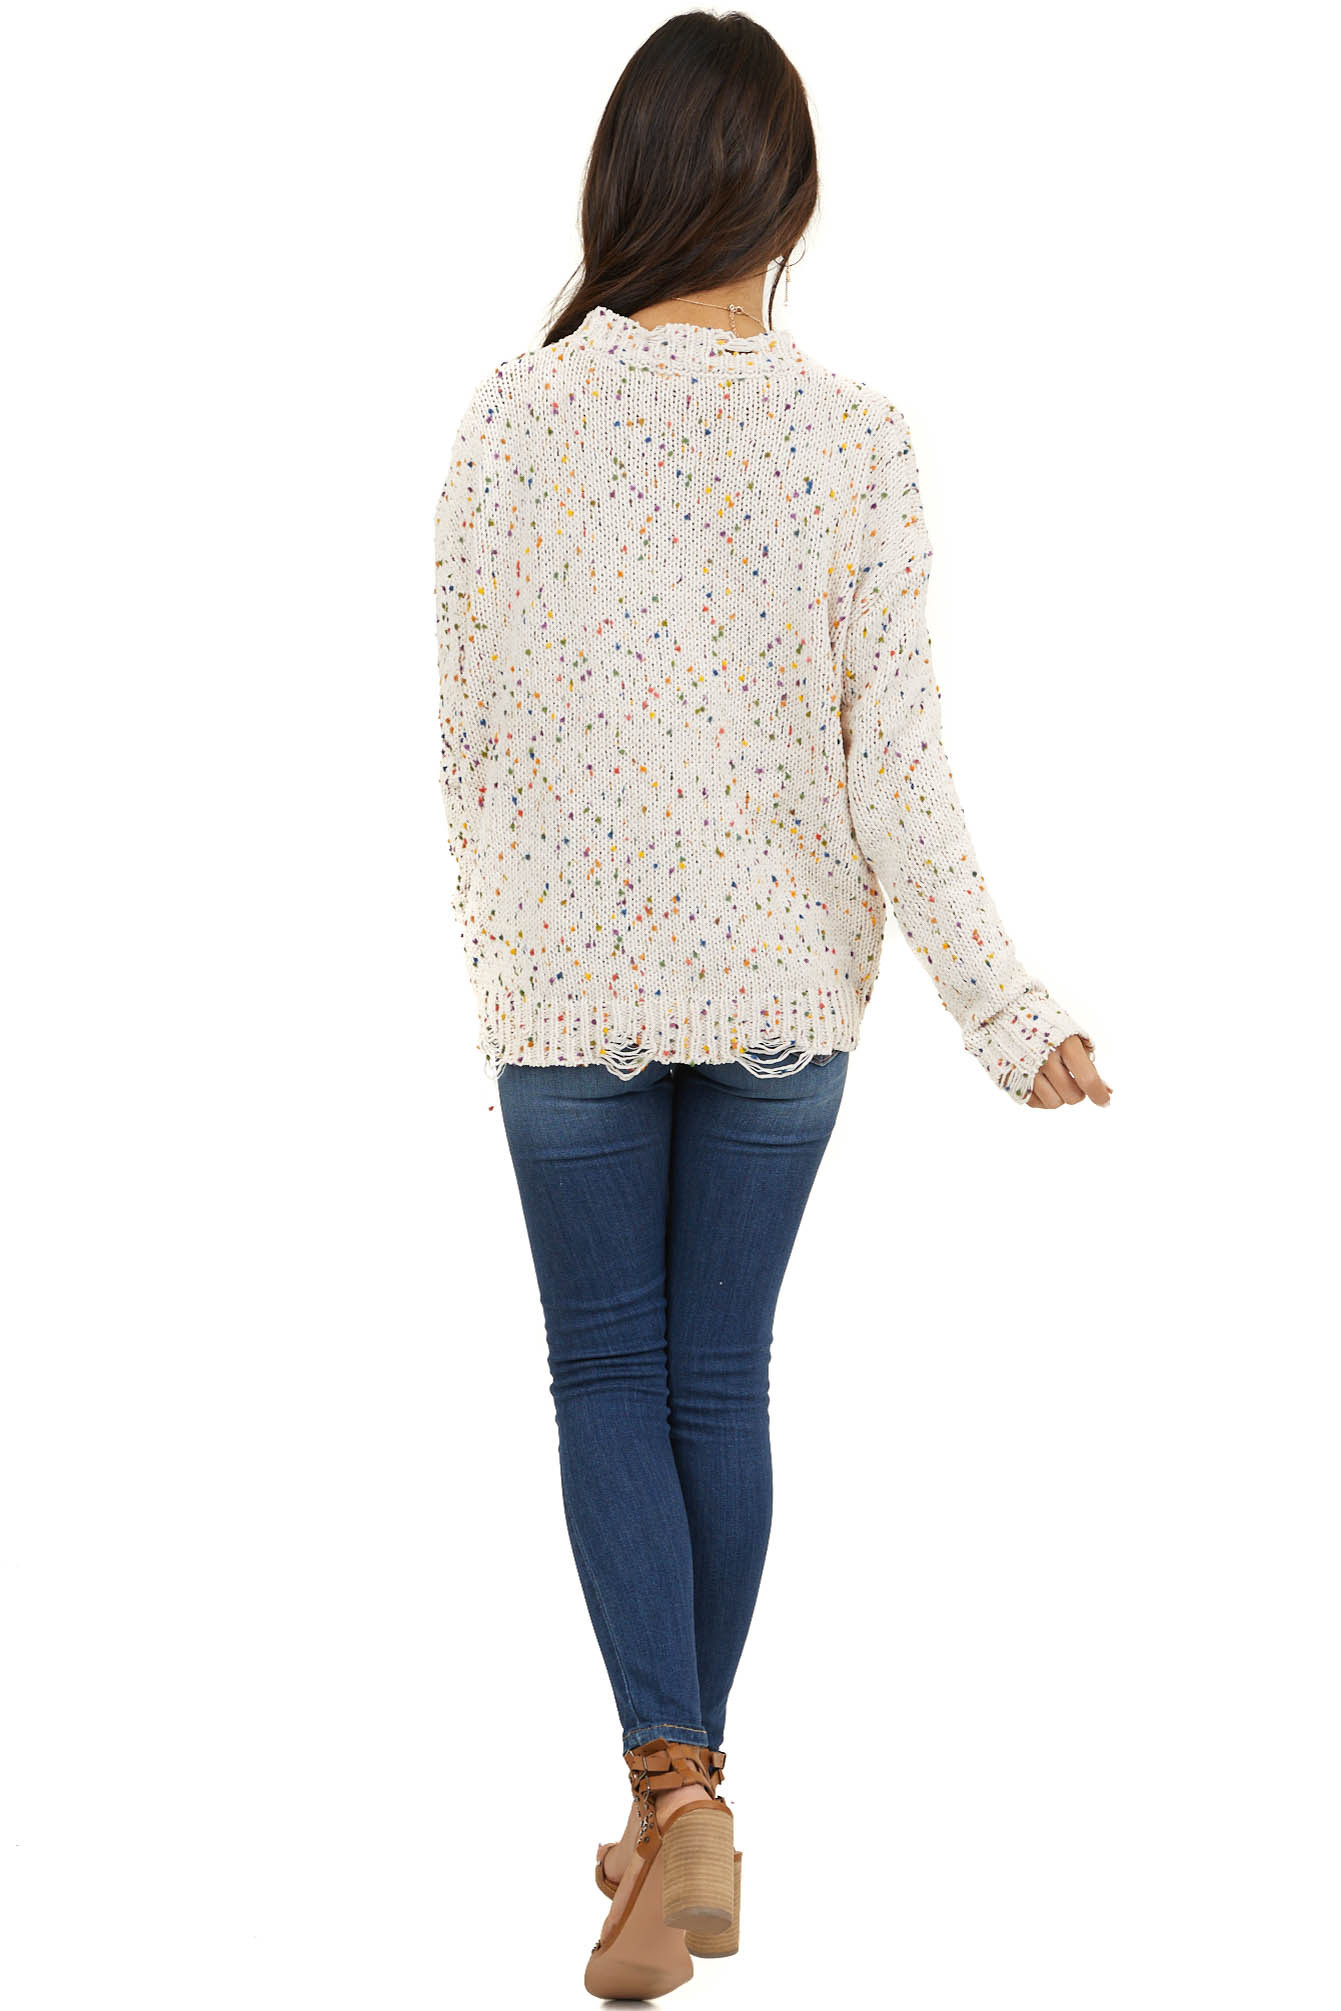 Cream Sweater with Rainbow Speckles and Distressed Detail